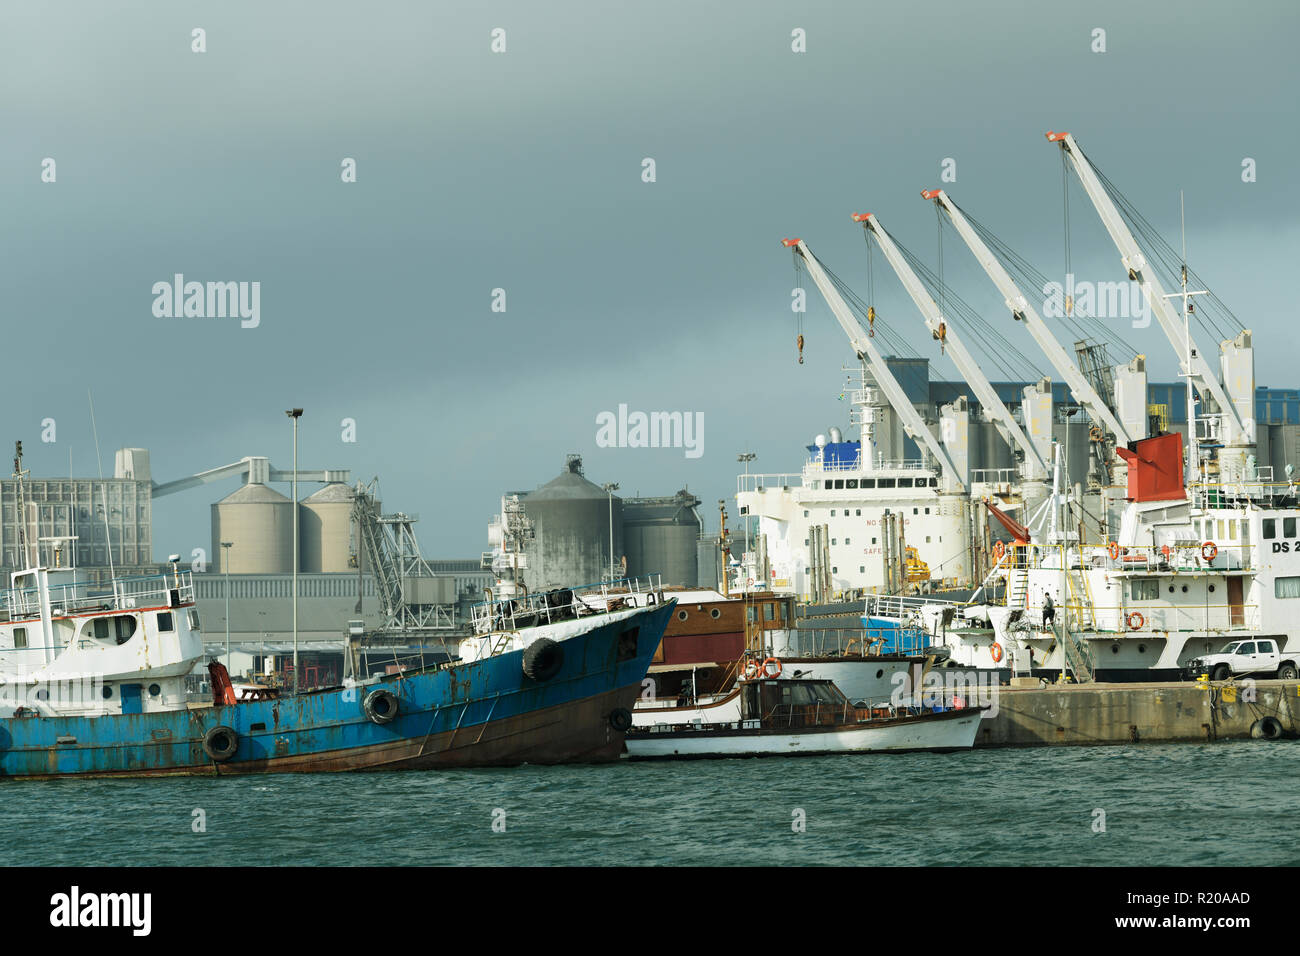 Durban, KwaZulu-Natal, South Africa, collection of seagoing ships tied to moorings dockside in harbour - Stock Image